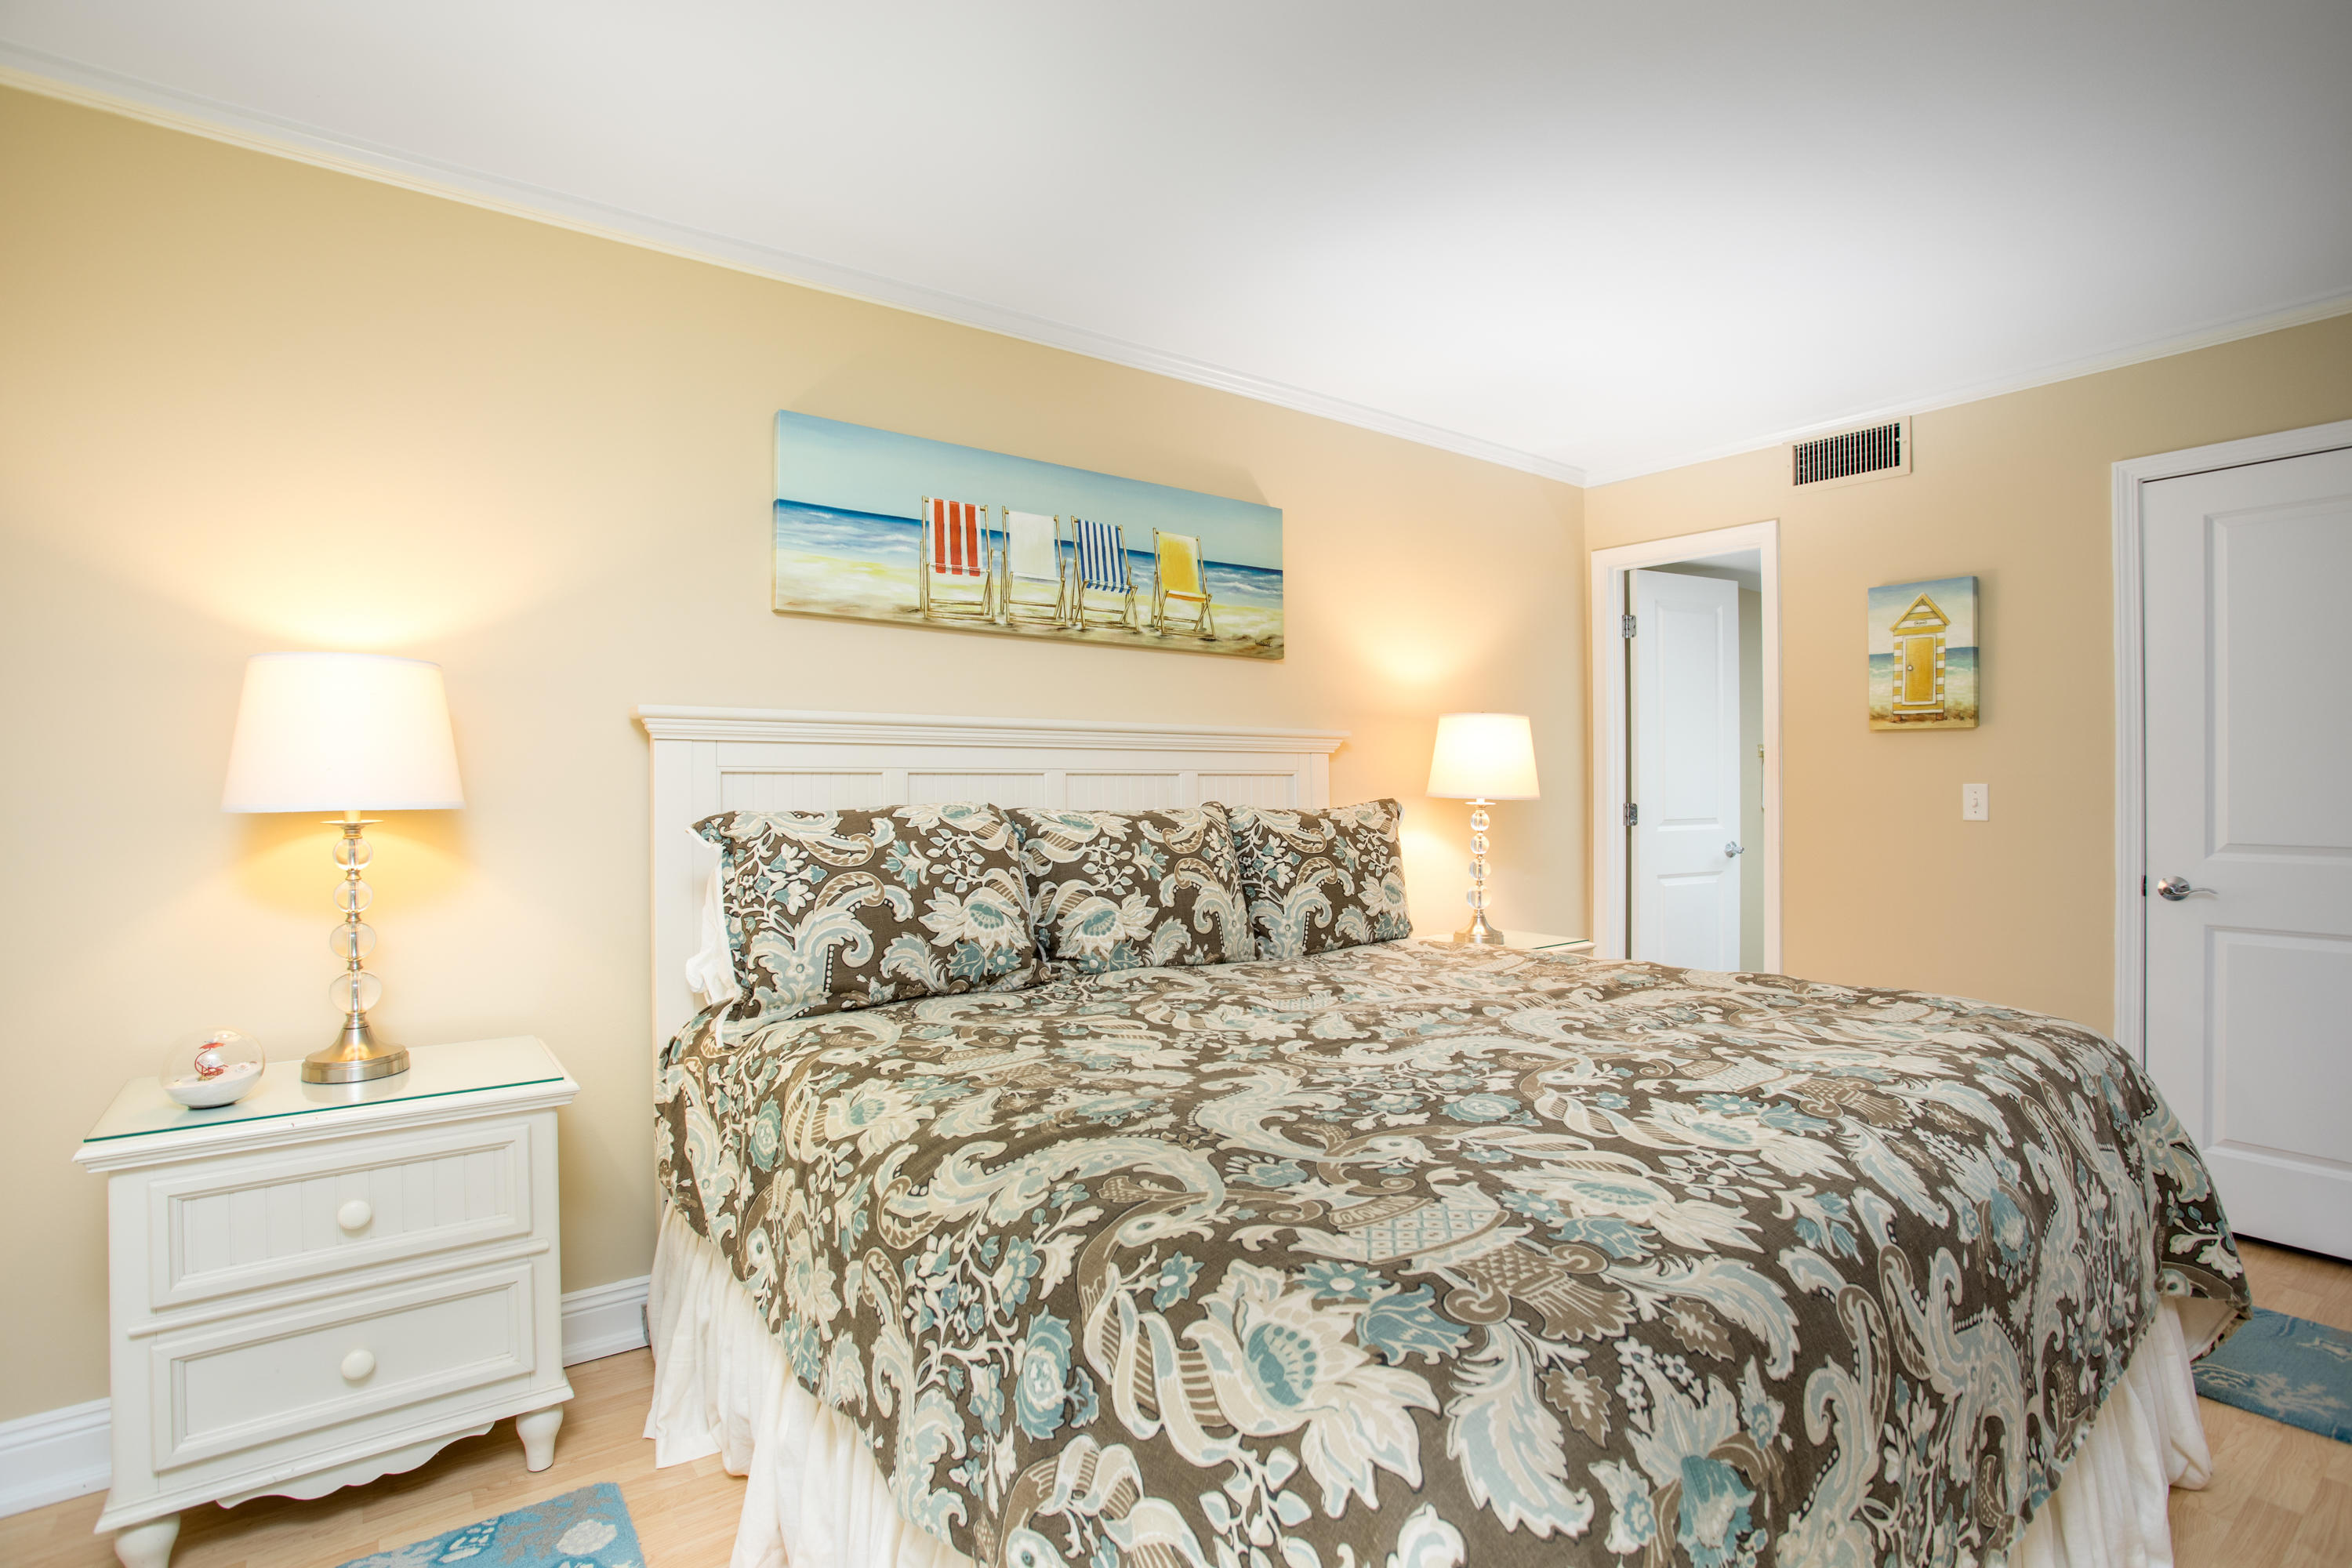 Seabrook Island Homes For Sale - 1329 Pelican Watch Villas, Seabrook Island, SC - 27